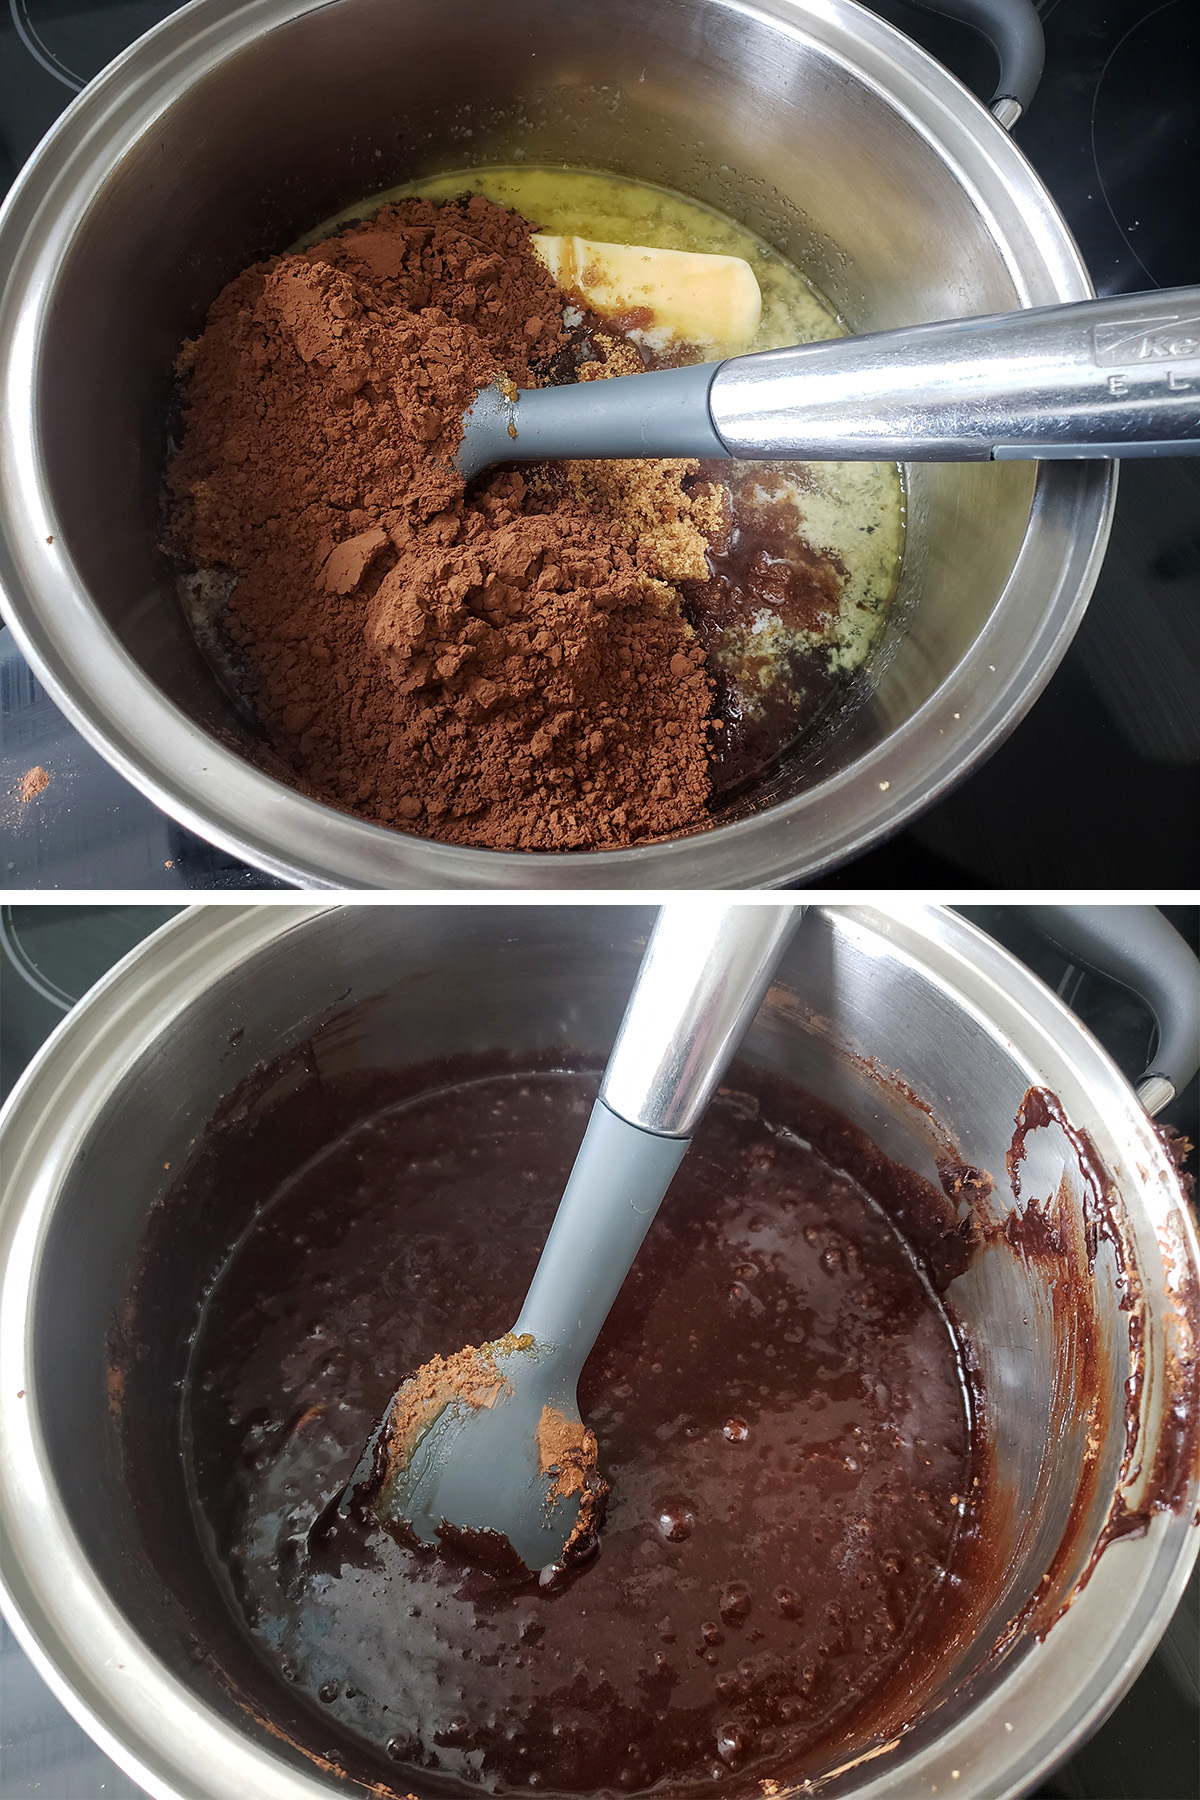 A two part image showing butter and syrup in a saucepan, then cocoa being mixed in.